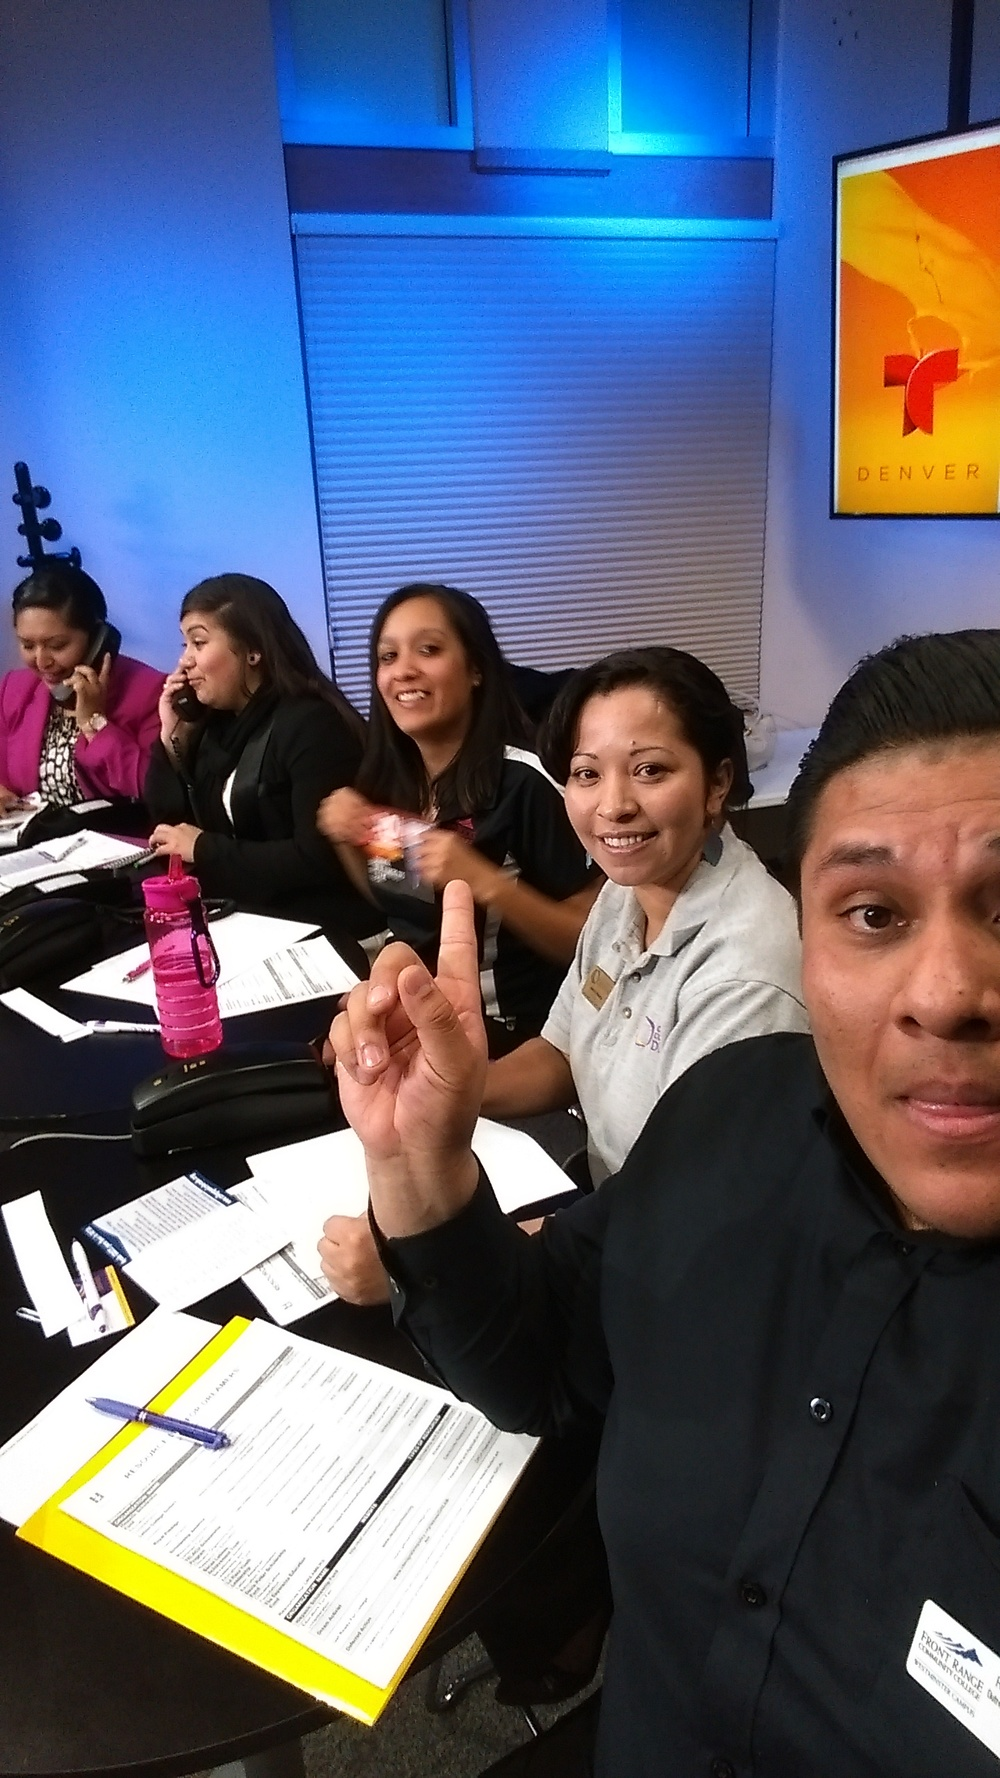 Tuesday, January 20, 2015 volunteers, left to right: Christian Gonzalez, Ana Ramirez, Veronica Estrada, Julia Montijo, and Rigo Rangel   answered   financial aid questions from our Latino community at Telemundo, in promotion of College Goal Colorado 2015.